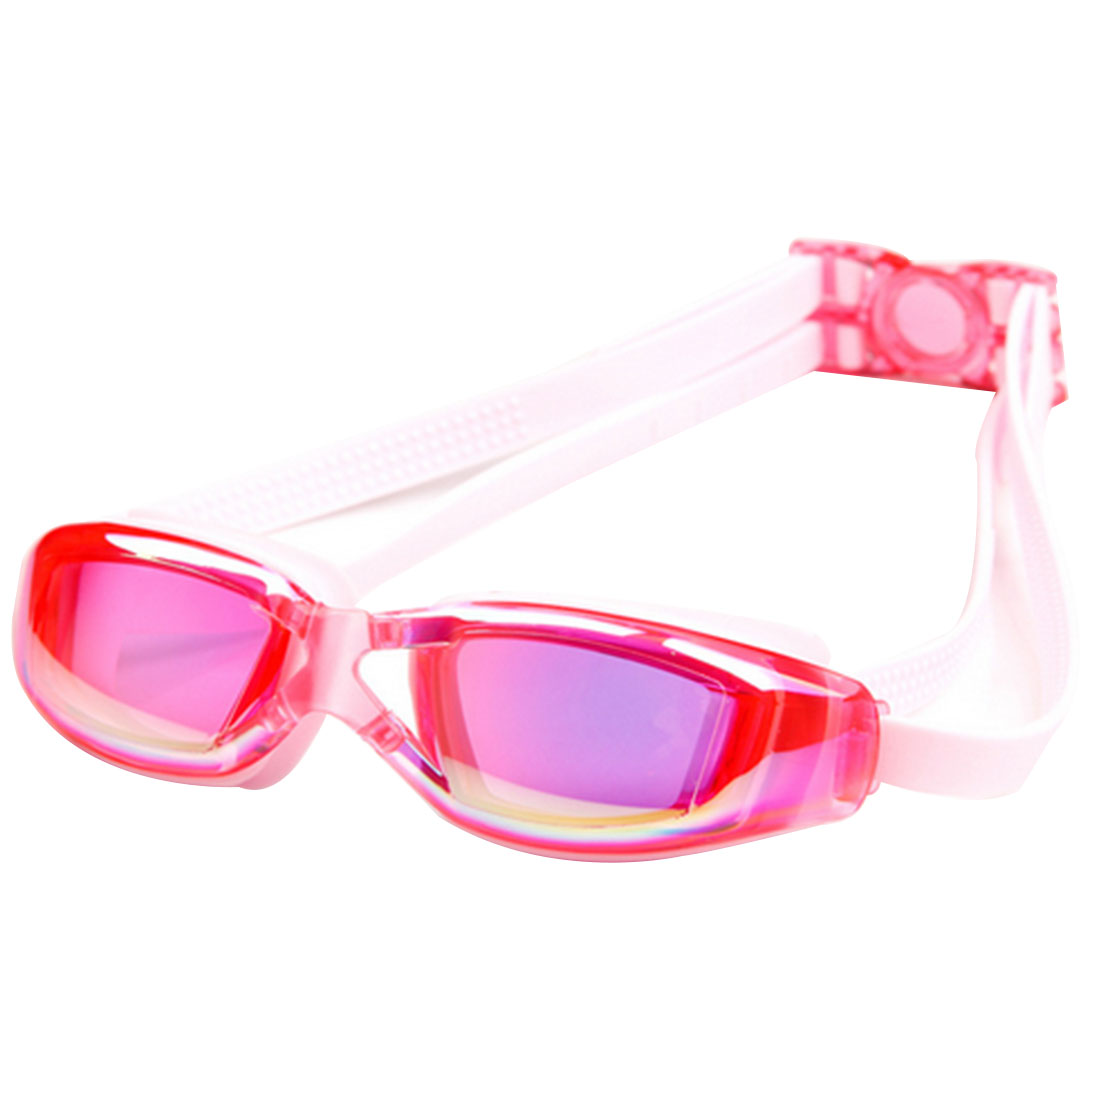 Waterproof Antifog Children Swimming Goggles for Kids Colorful Pink by